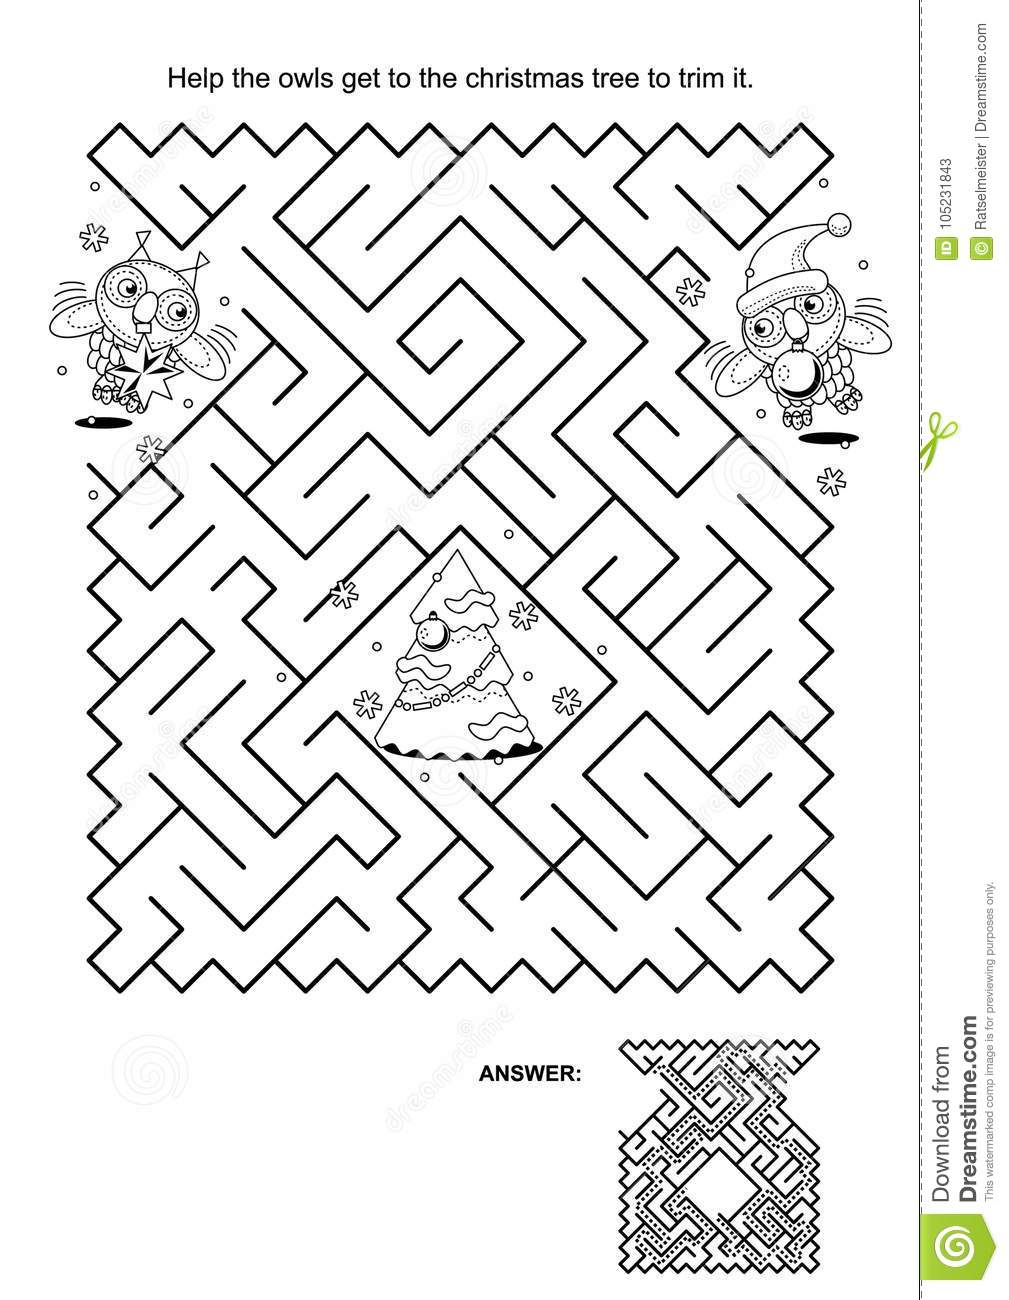 maze game for kids owls trim the christmas tree